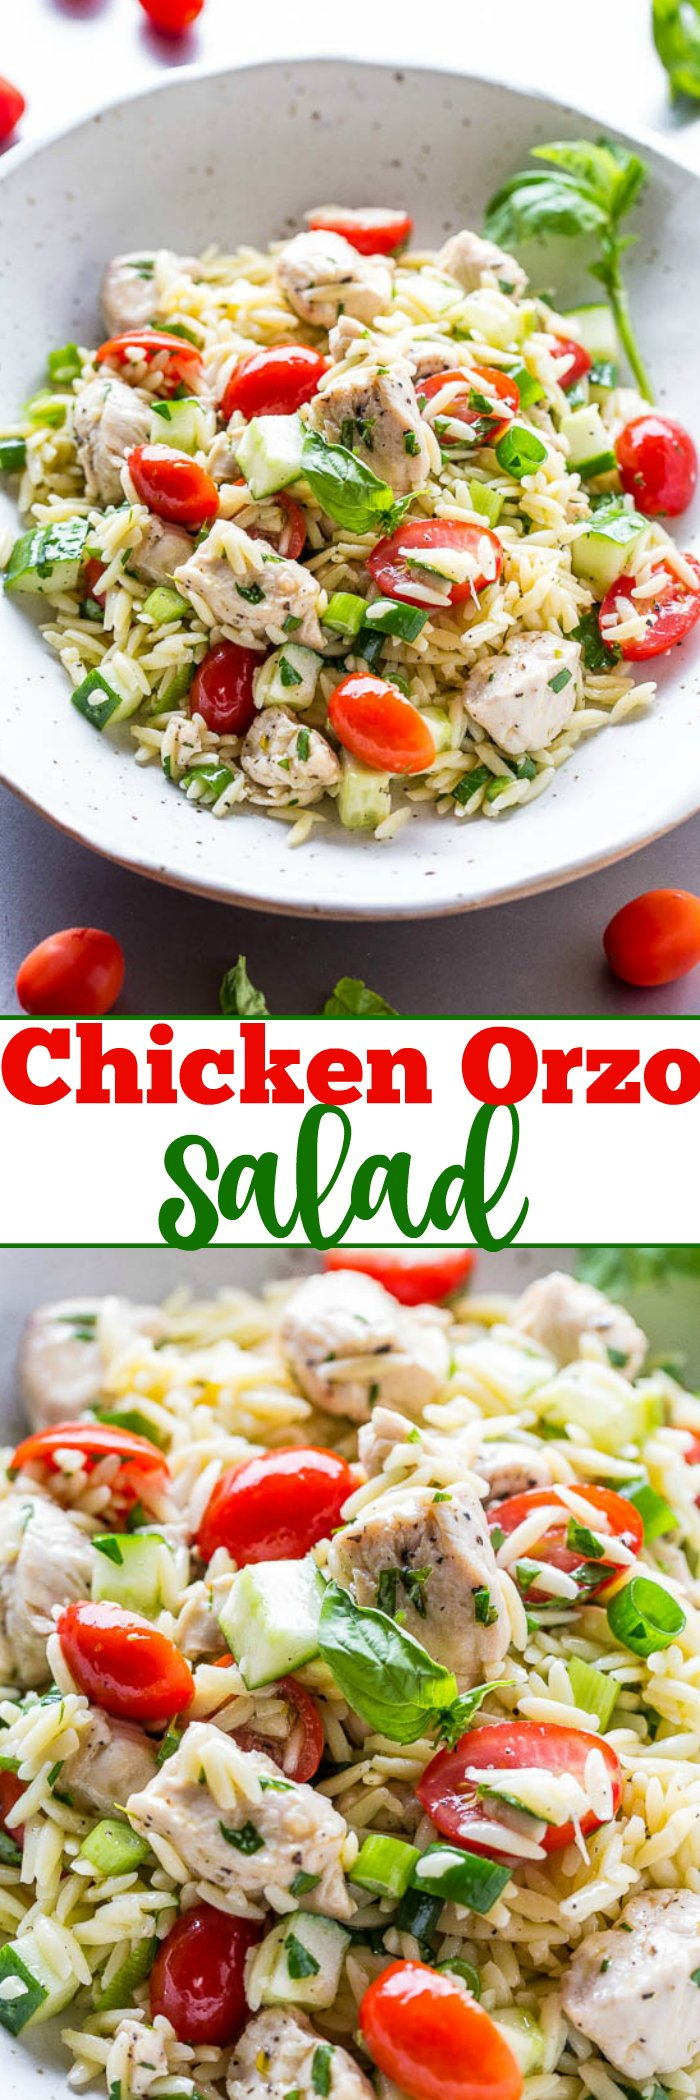 Orzo Chicken Salad - Juicy chicken tossed with orzo, tomatoes, cucumbers, basil, and a super flavorful lemon vinaigrette!! Easy, healthy, ready in 30 minutes, and a perfect way to use your garden fresh veggies!!